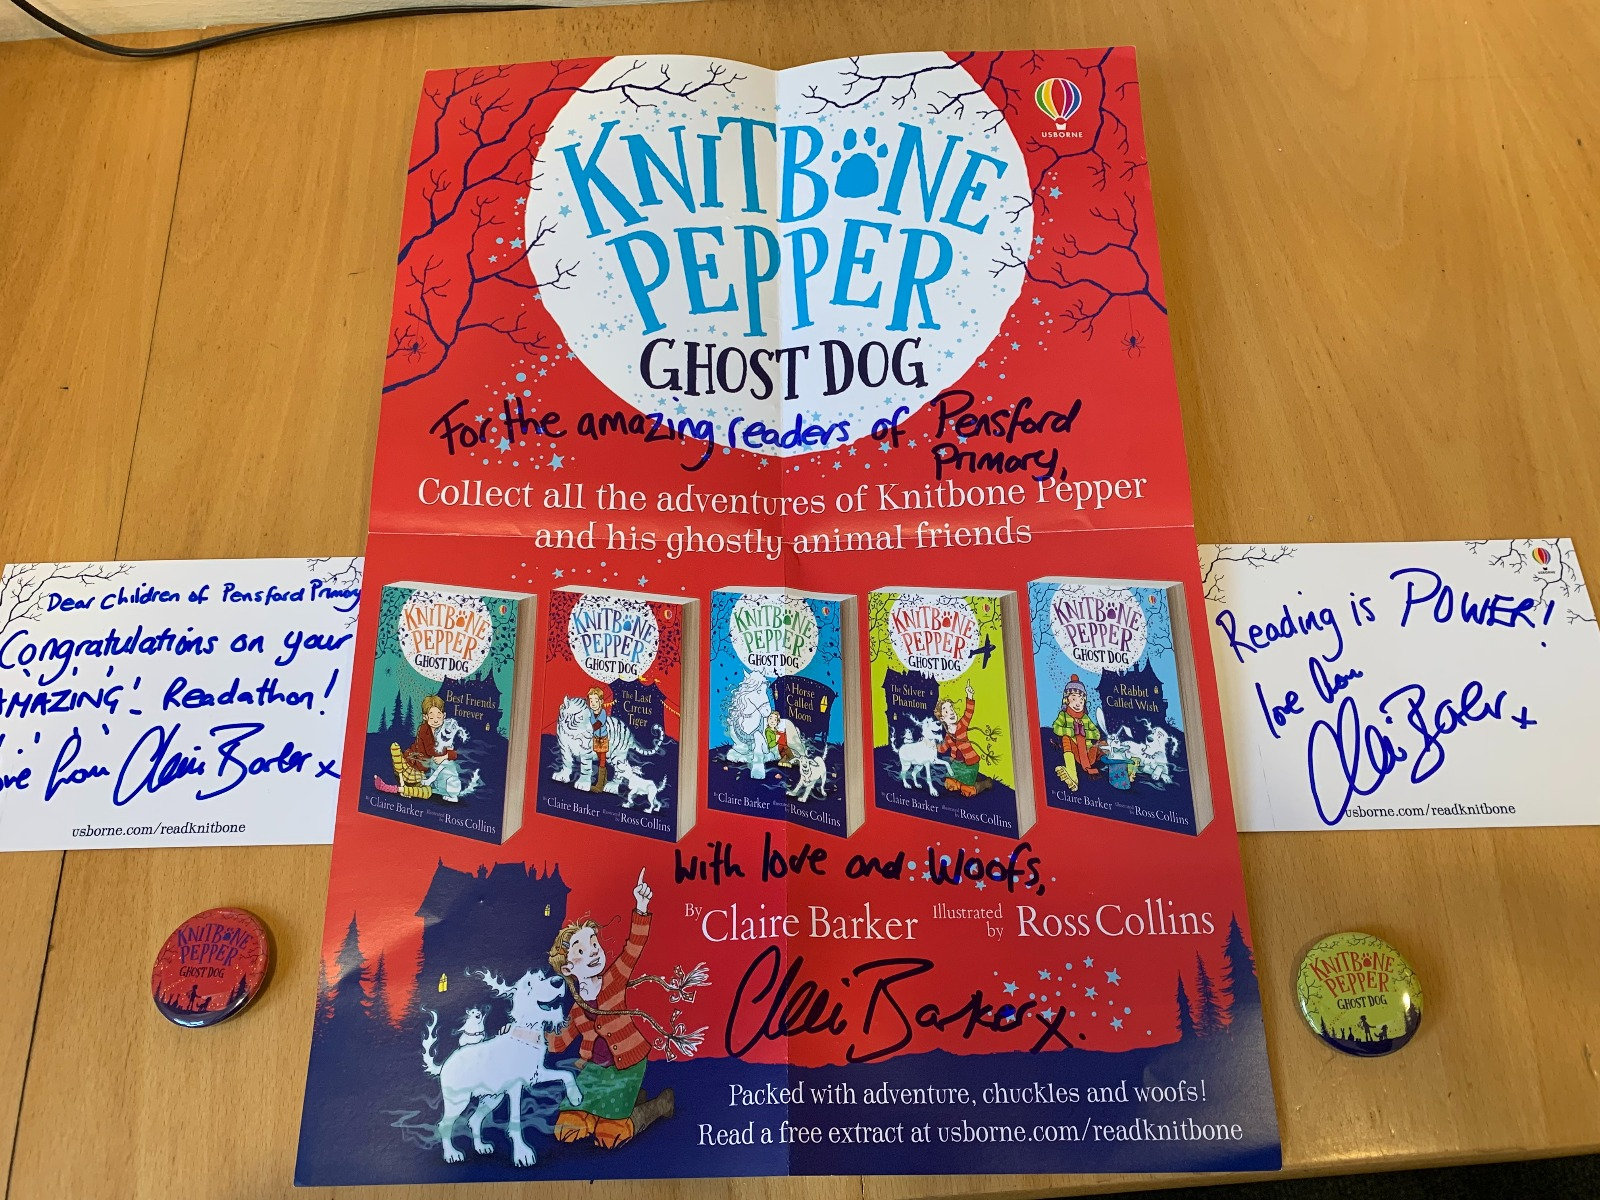 An extra special congratulations to Pensford Primary School from author Claire Barker, author of the Knitbone Pepper: Ghost Dog series